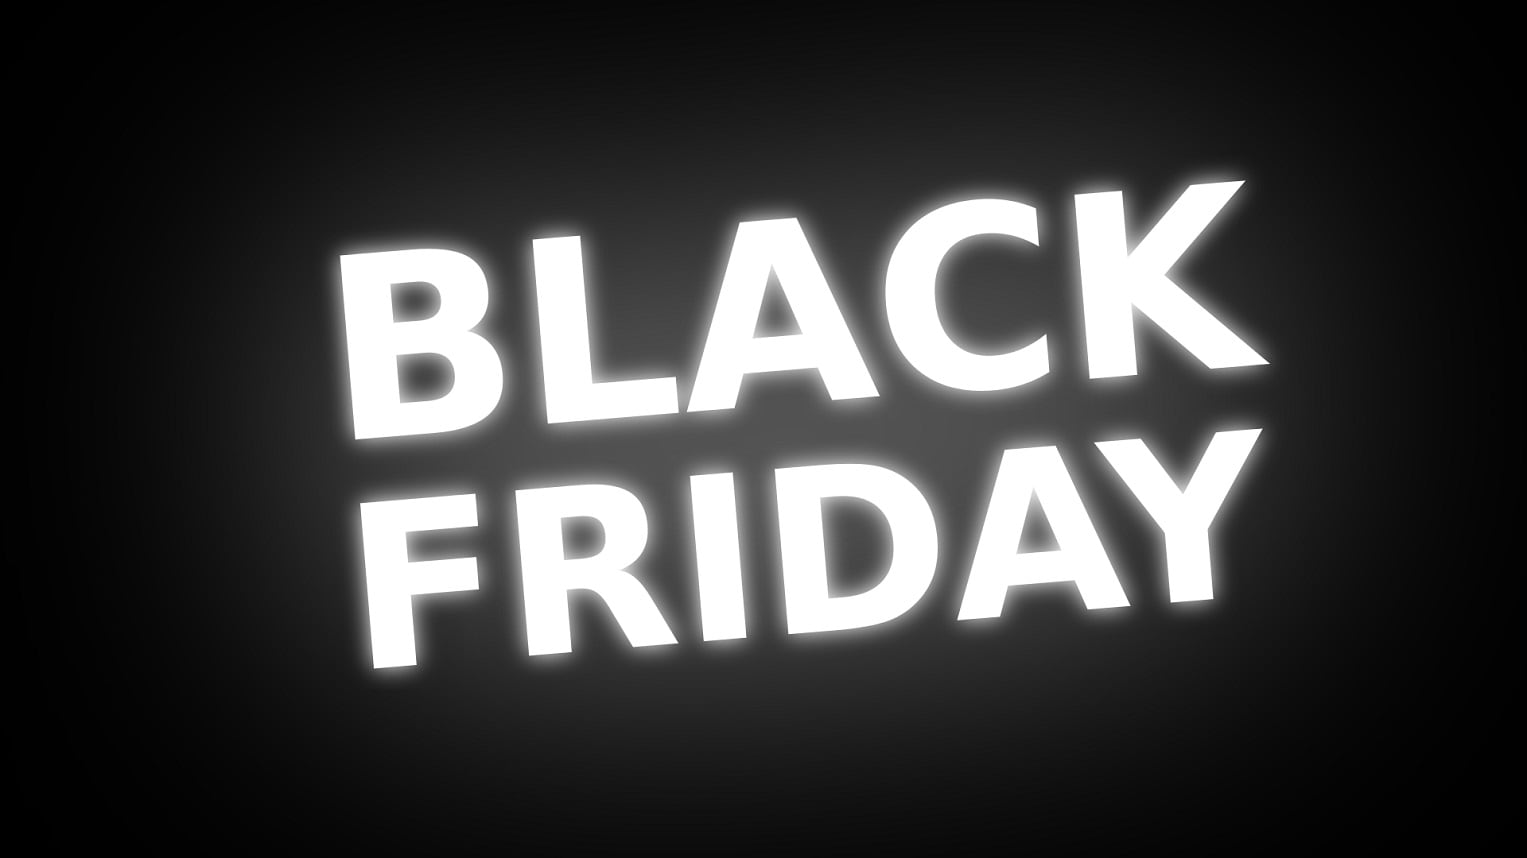 Los riesgos digitales del Black Friday y el Cyber Monday